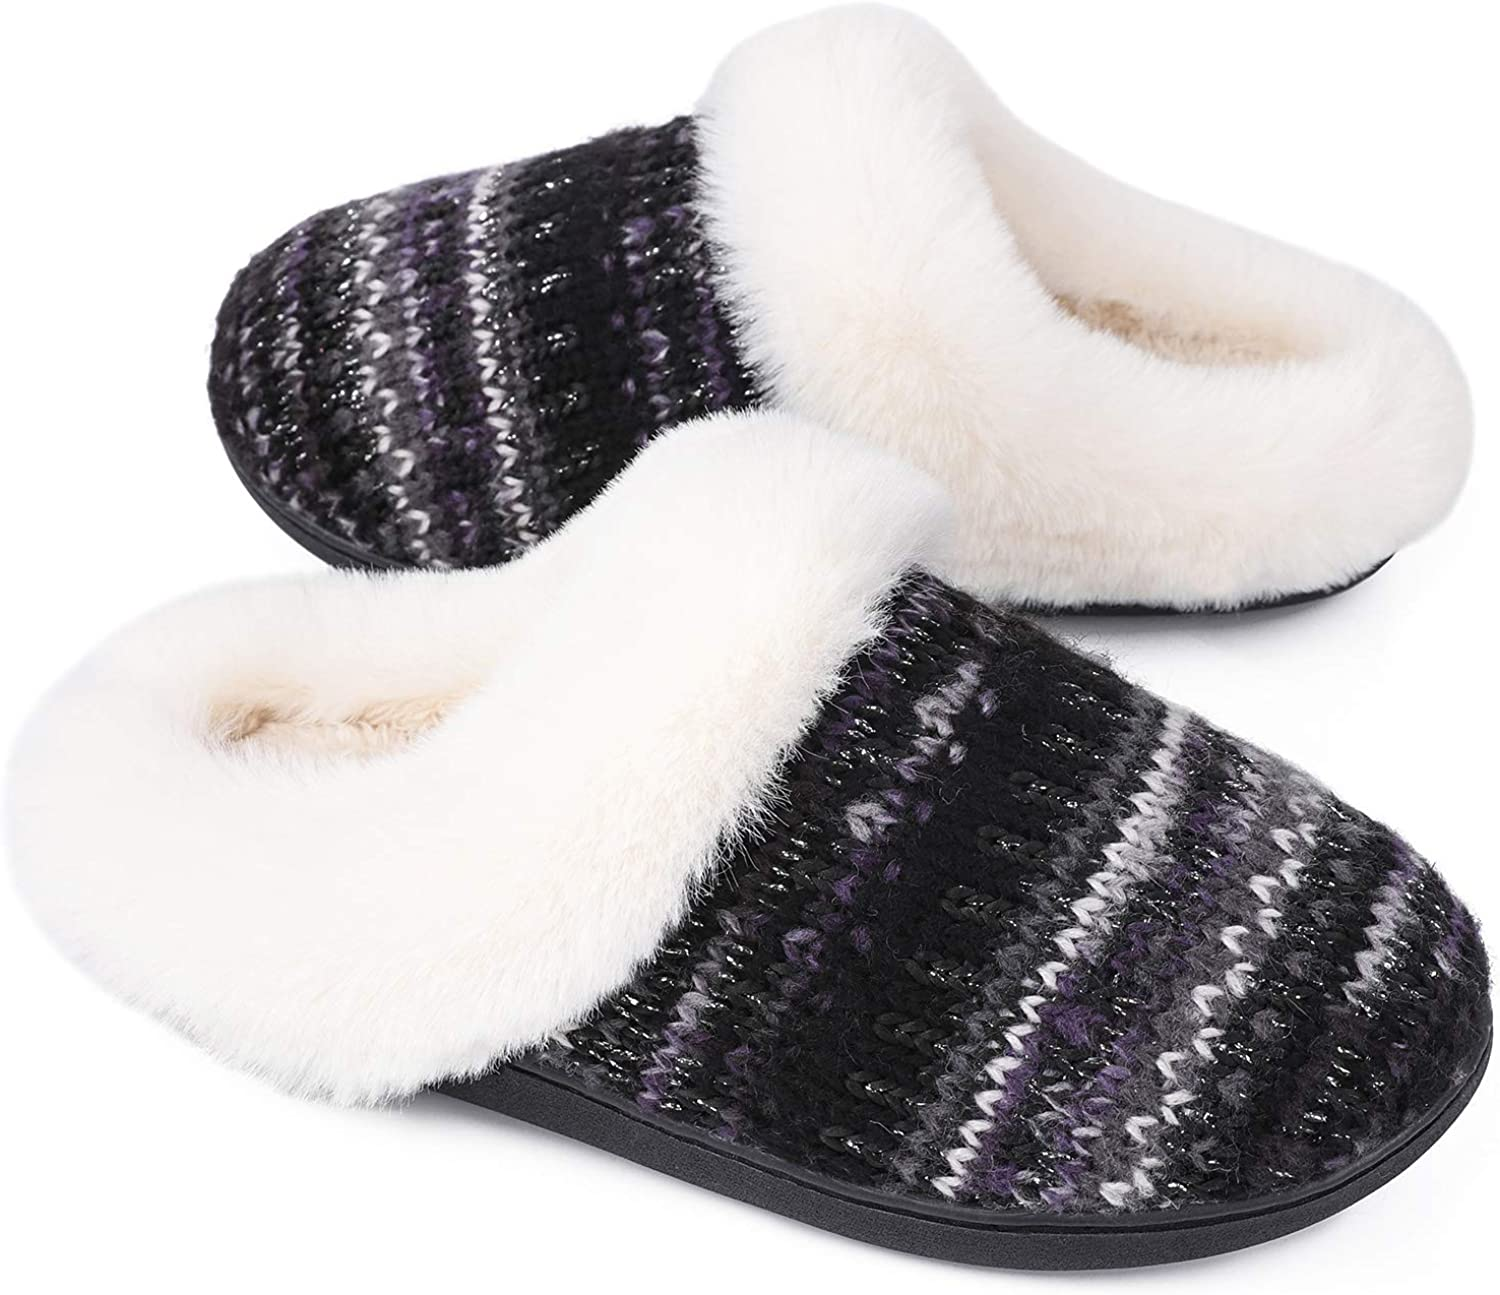 LongBay Women's Knit Fur Slippers Fuzzy Comfy Memory Foam House Shoes with Sparkle Decor